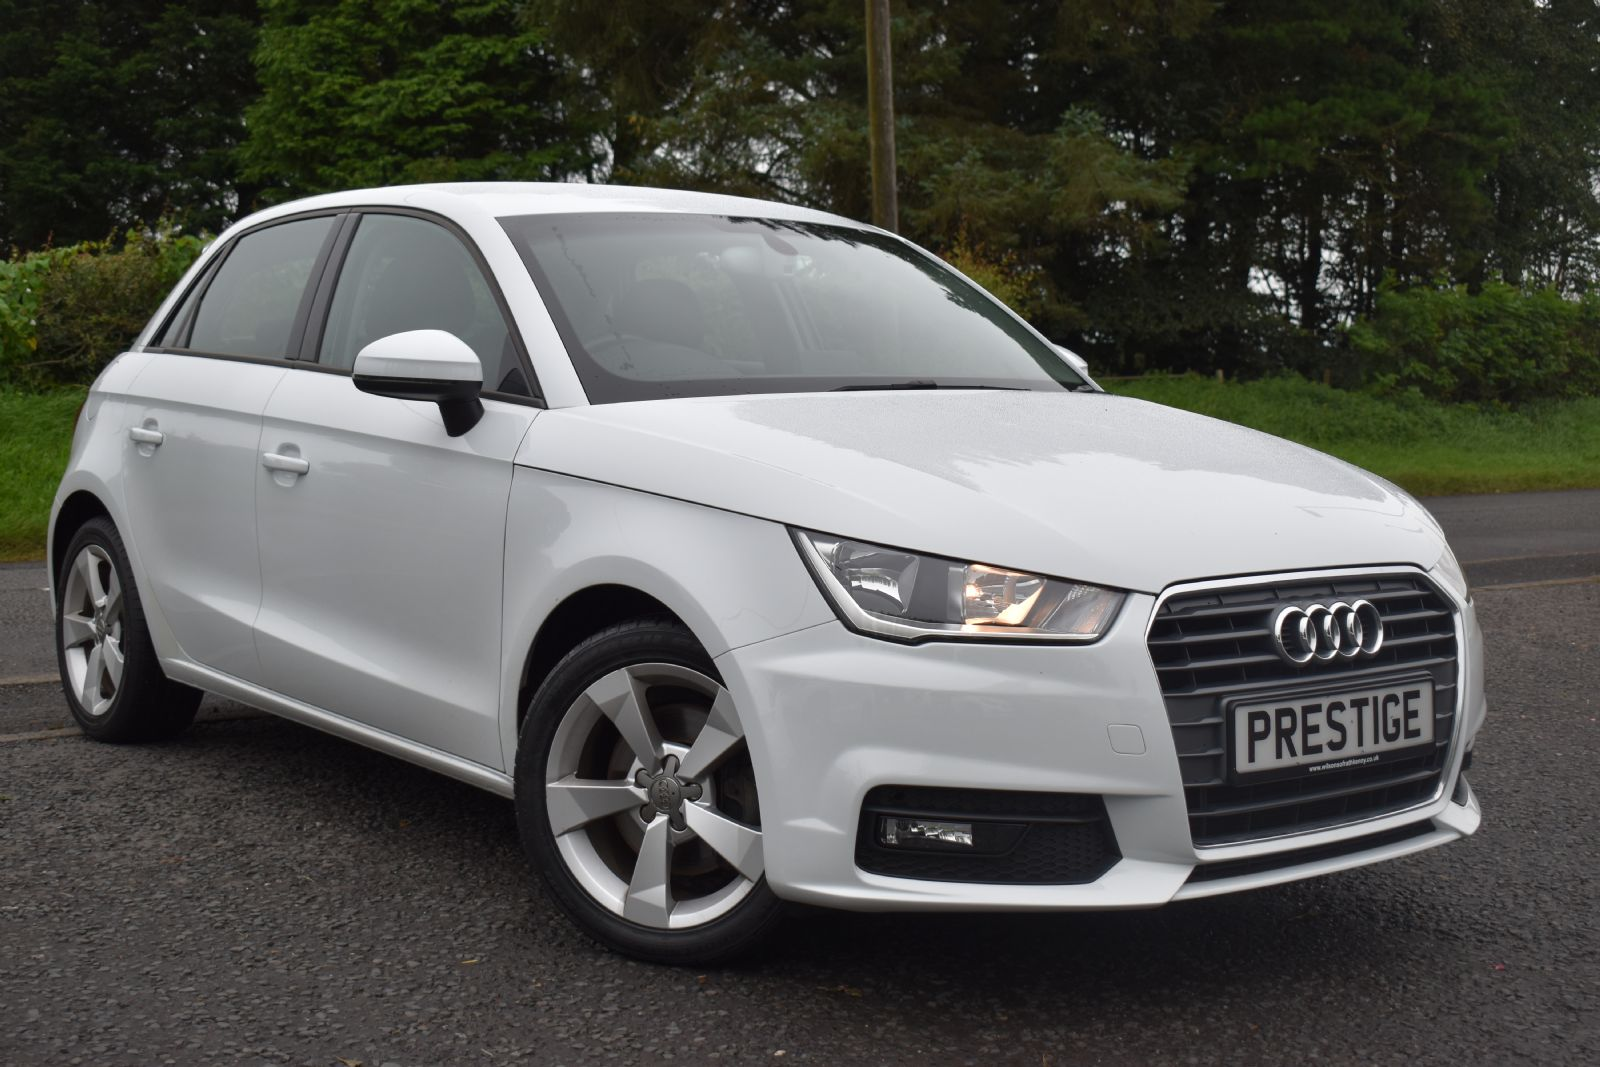 Audi A1 SPORT 1.6 TDI 5Door * Sat Nav Model* Rear Sensors*1 Years Warranty*Contact Phil Mailey for details*